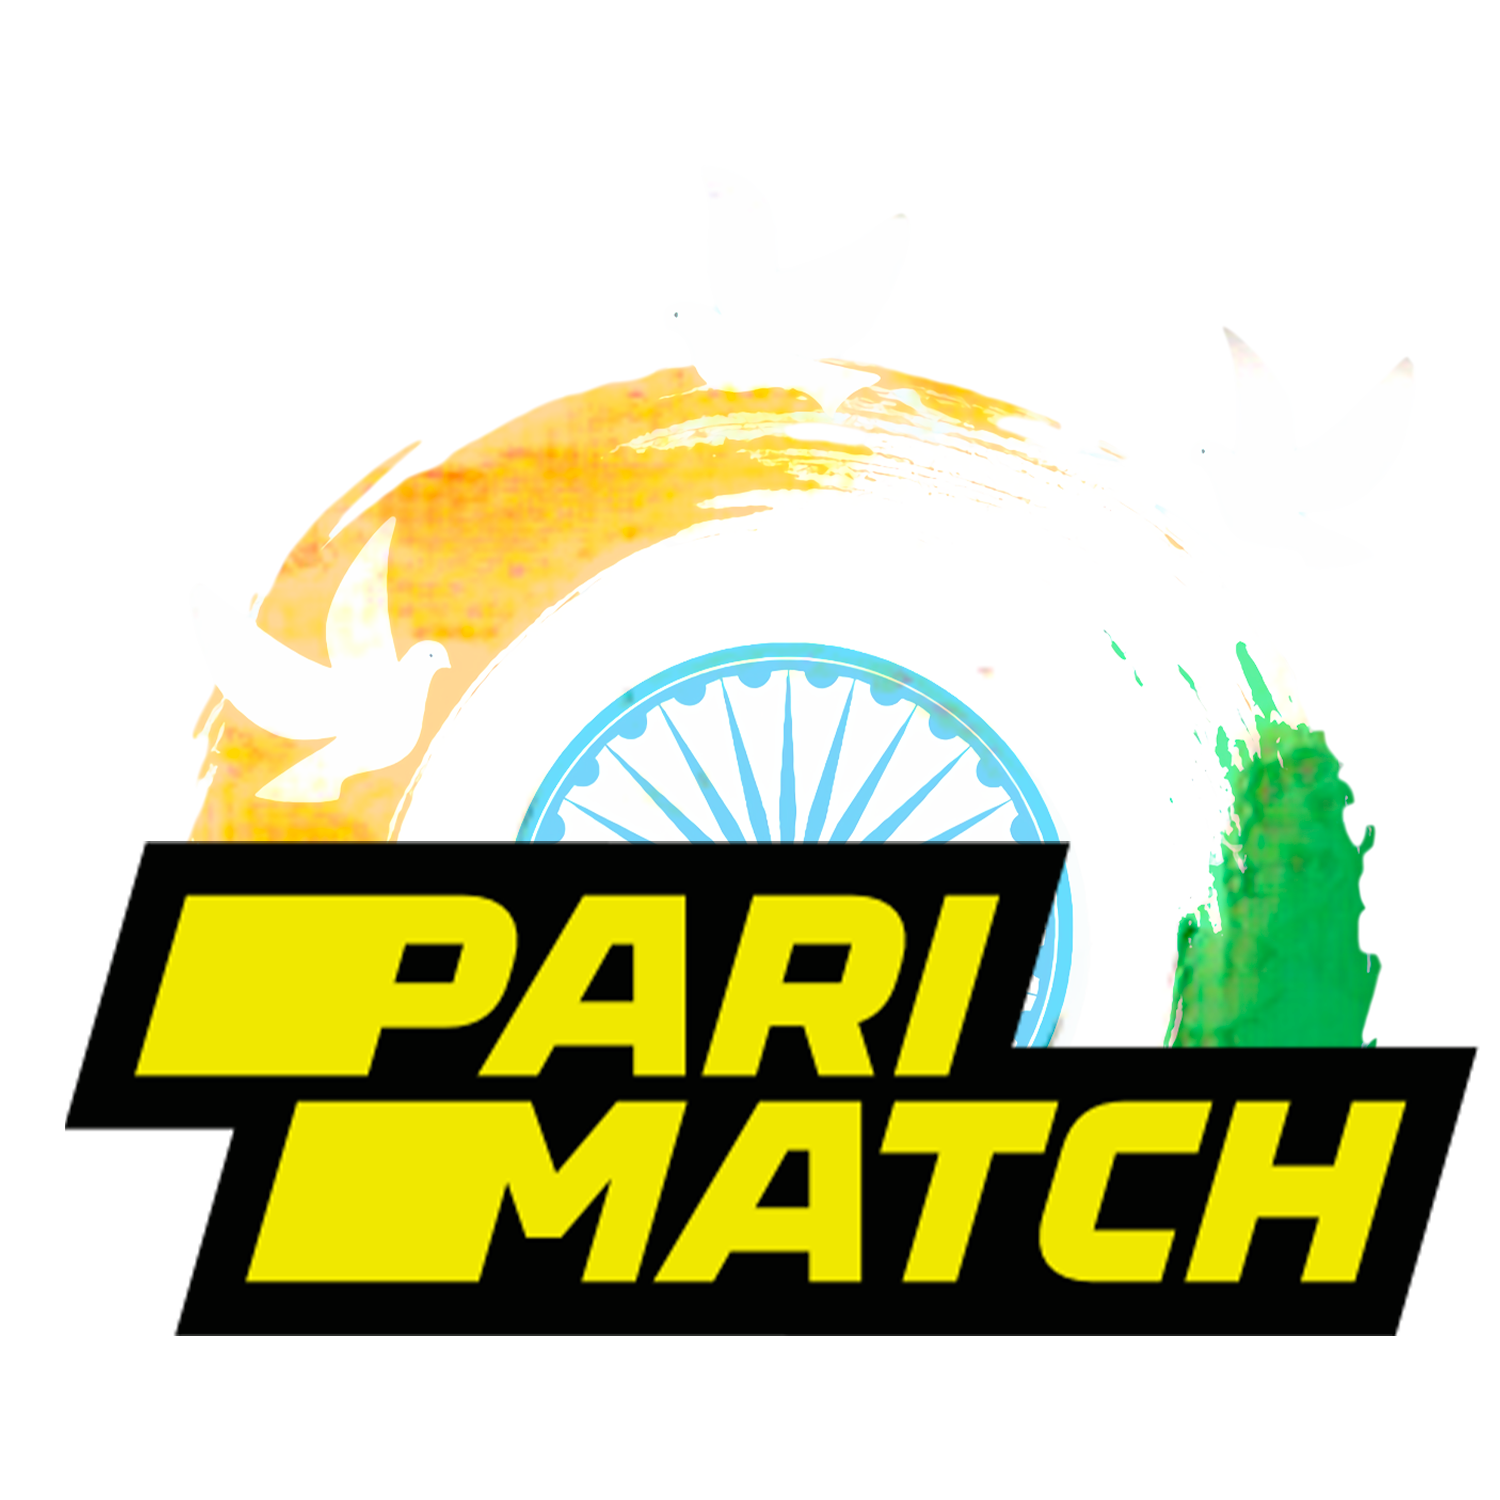 Parimatch is the official site for online betting on cricket, kabadi and other sports in India.